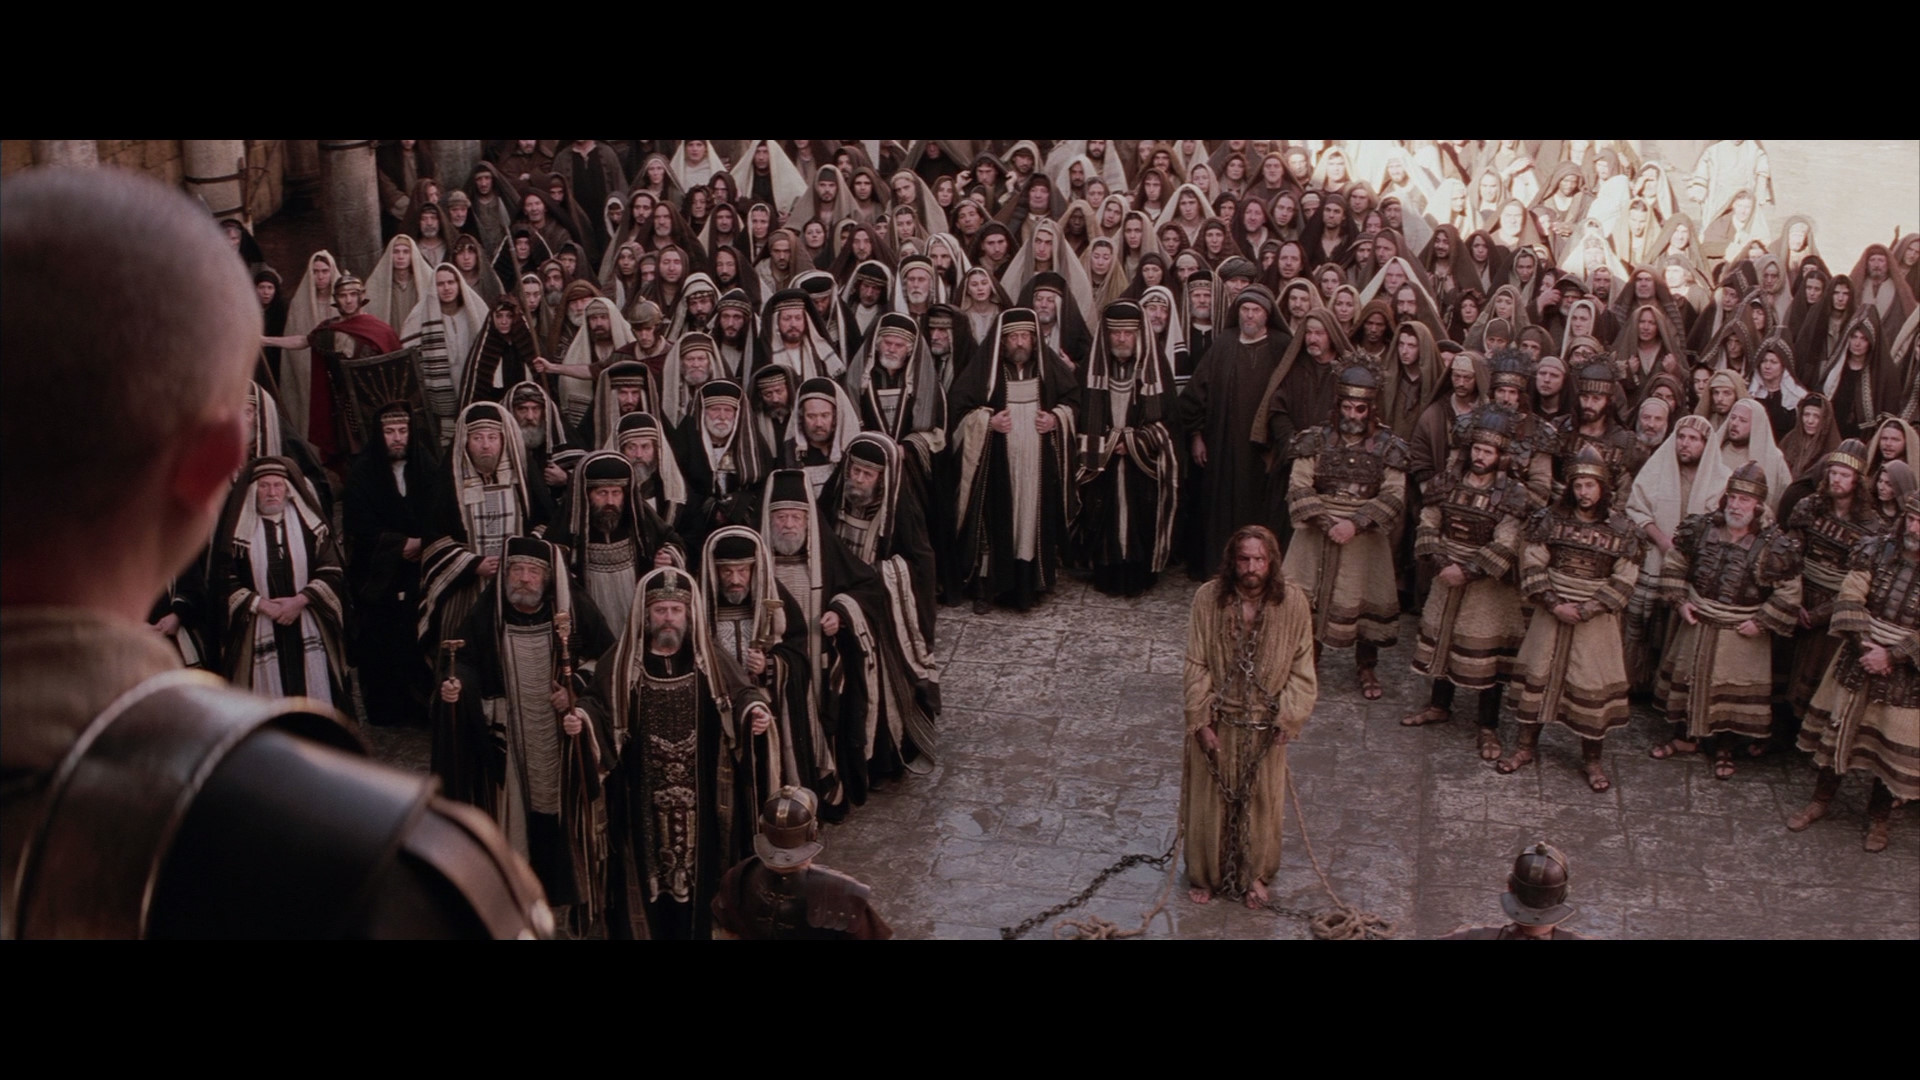 The unanimous vote of the Jews (photo)